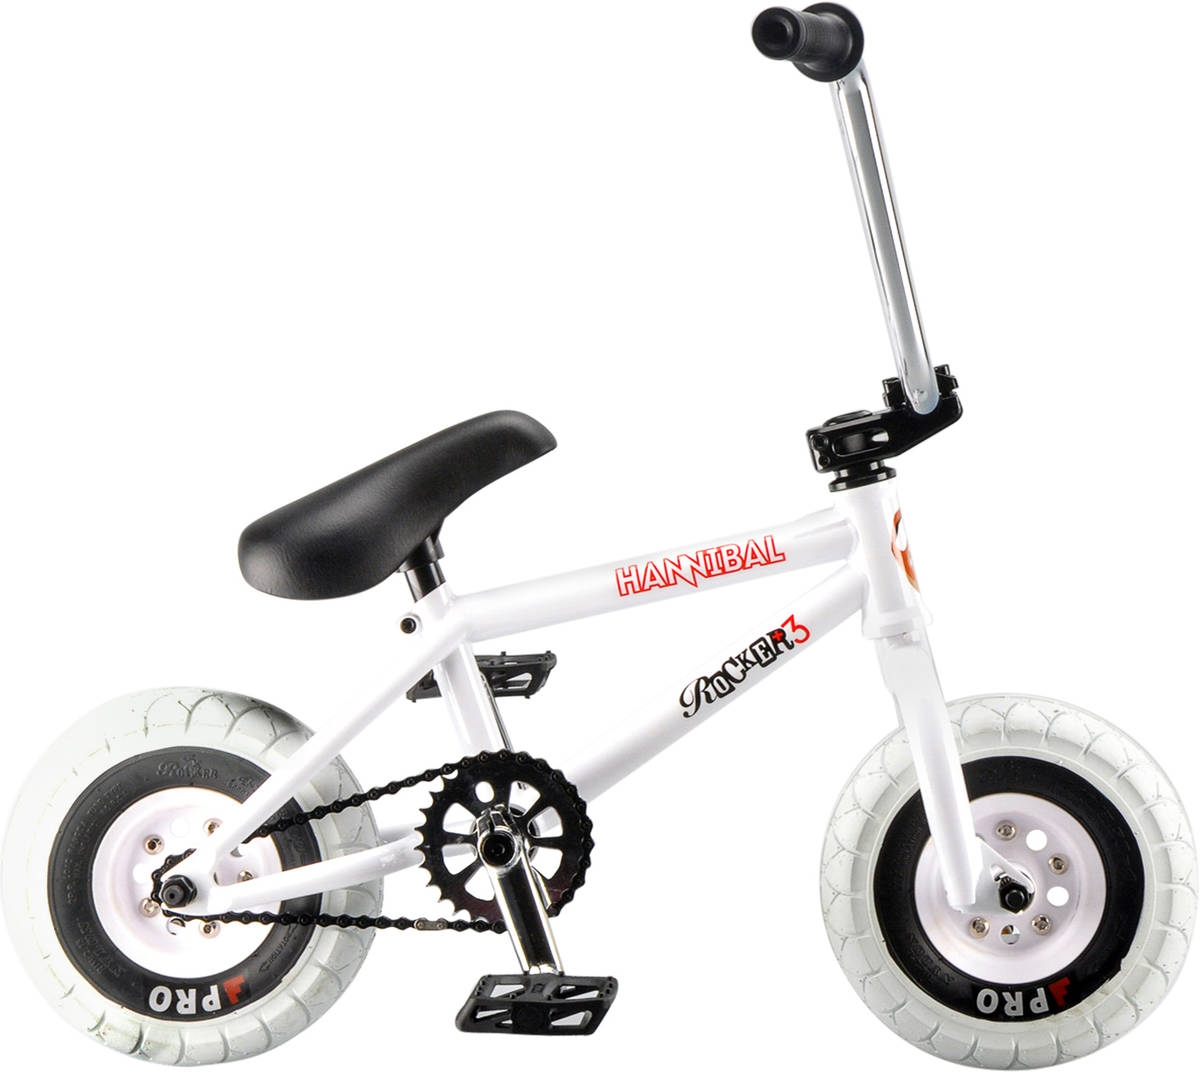 An image of Rocker Irok Hannibal Freecoaster Mini BMX Bike